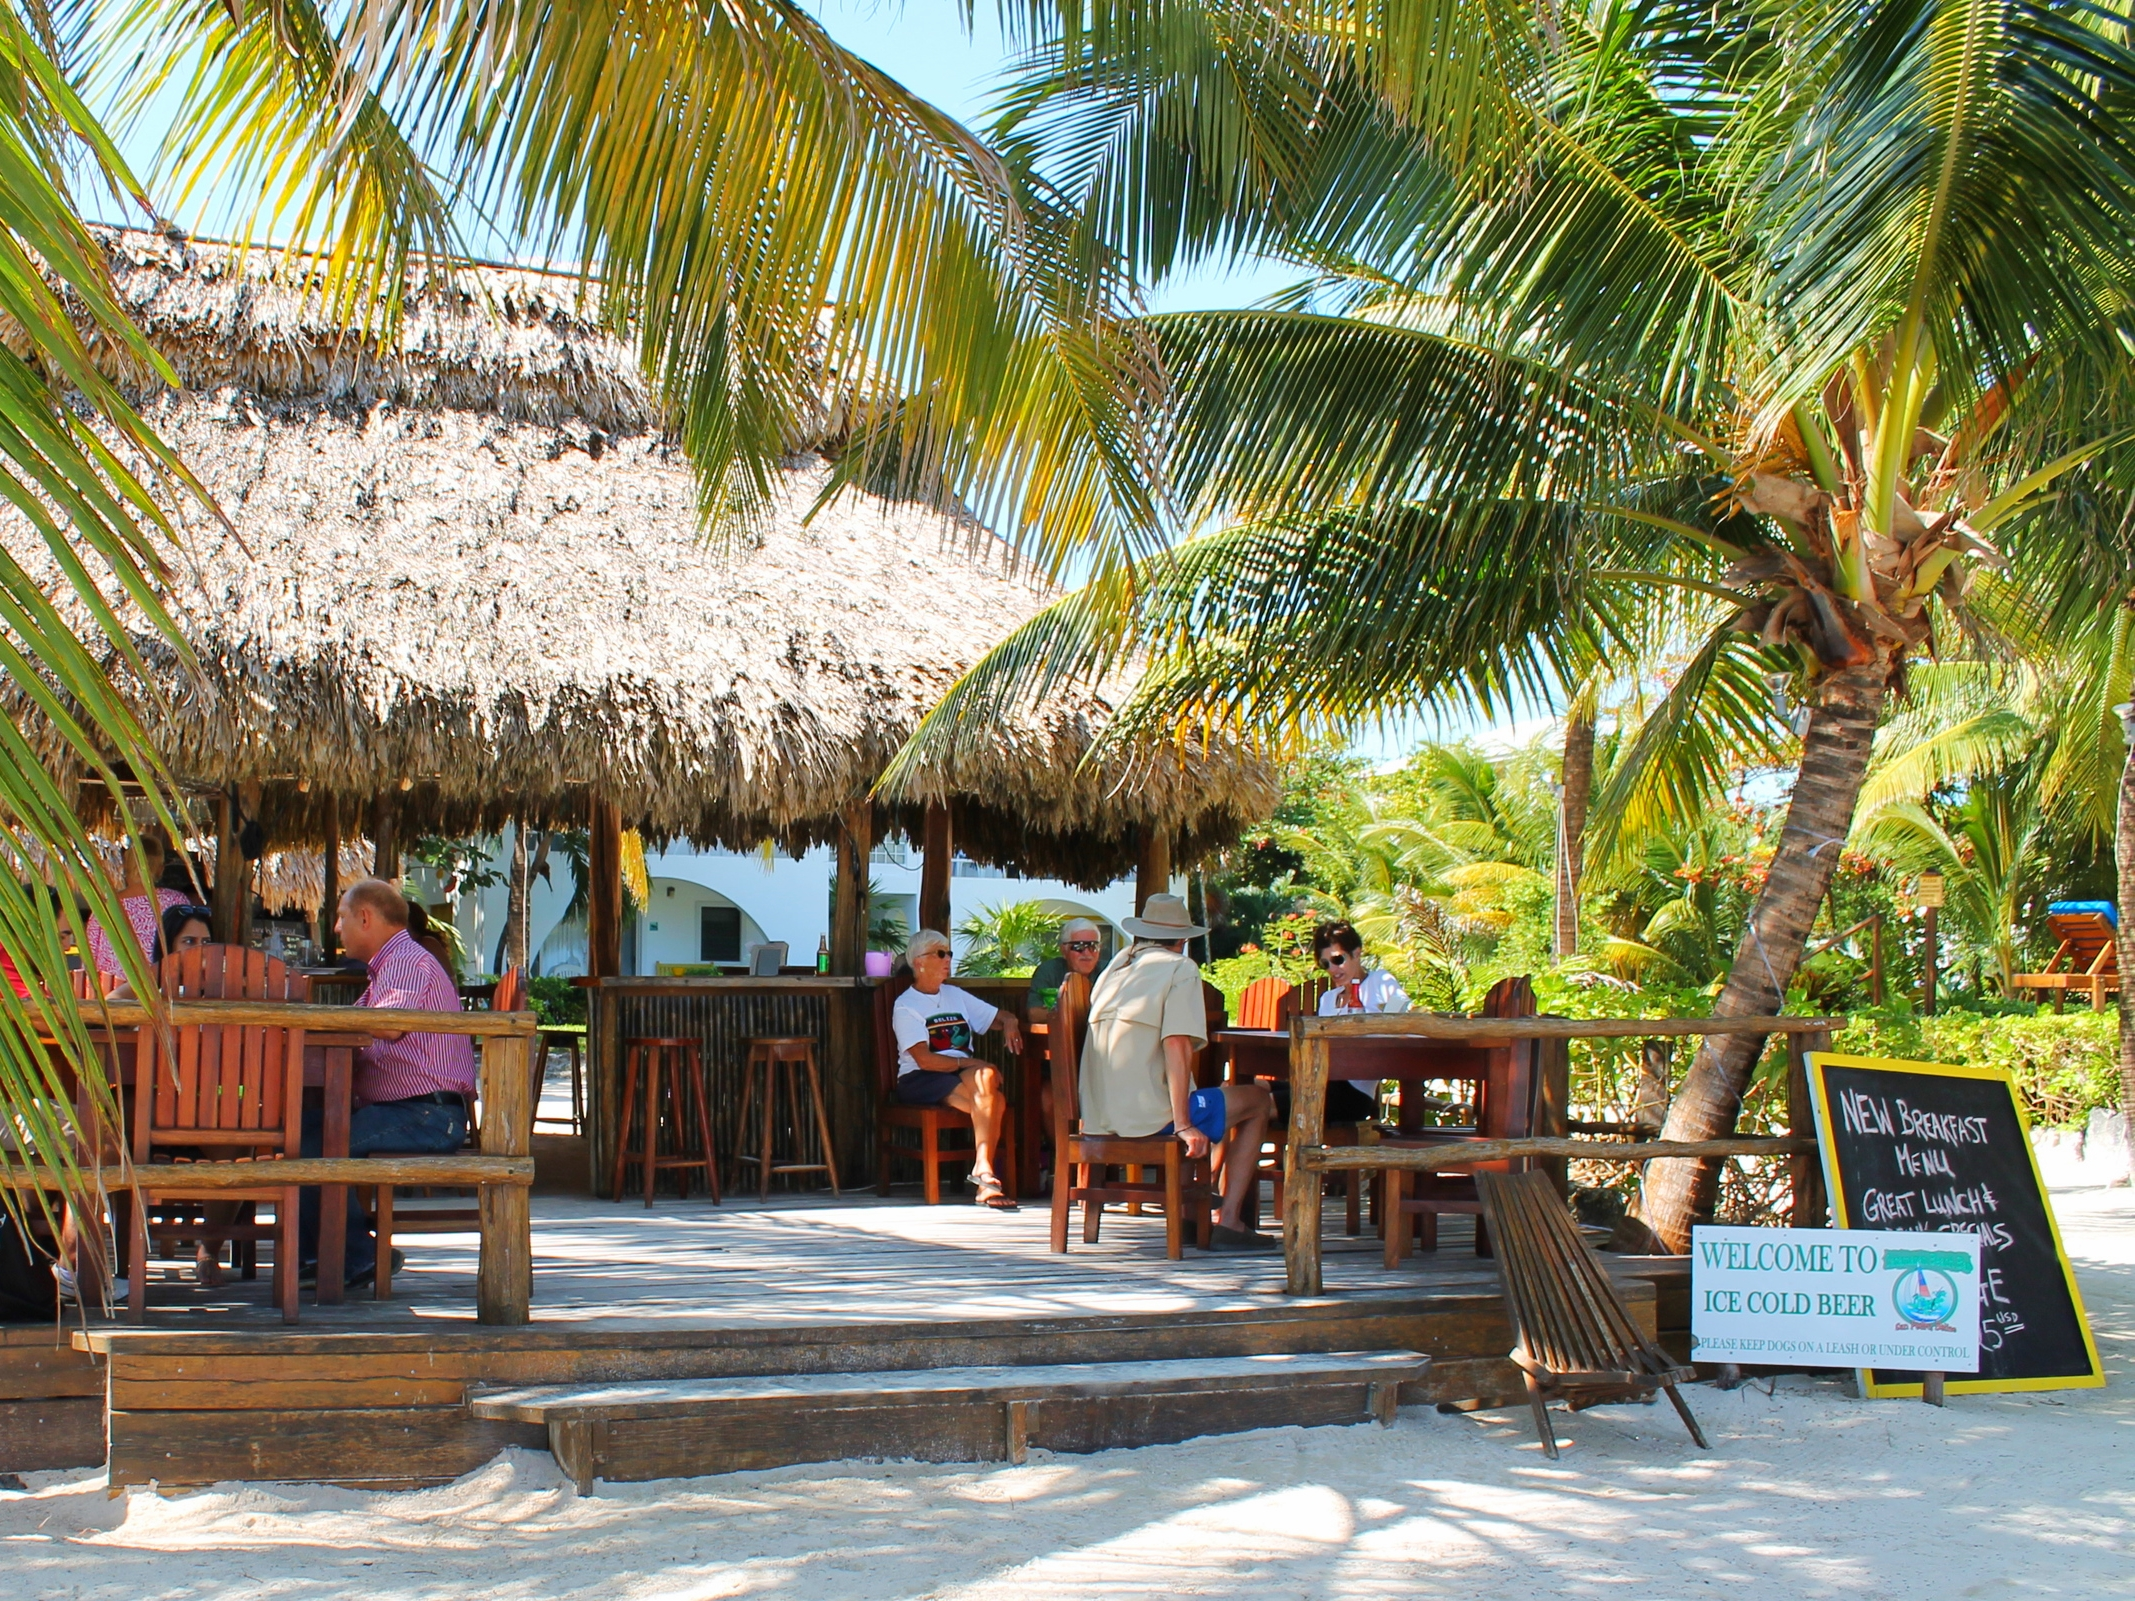 Pausing for a cold Belikin in a friendly place is a must on Ambergris Caye